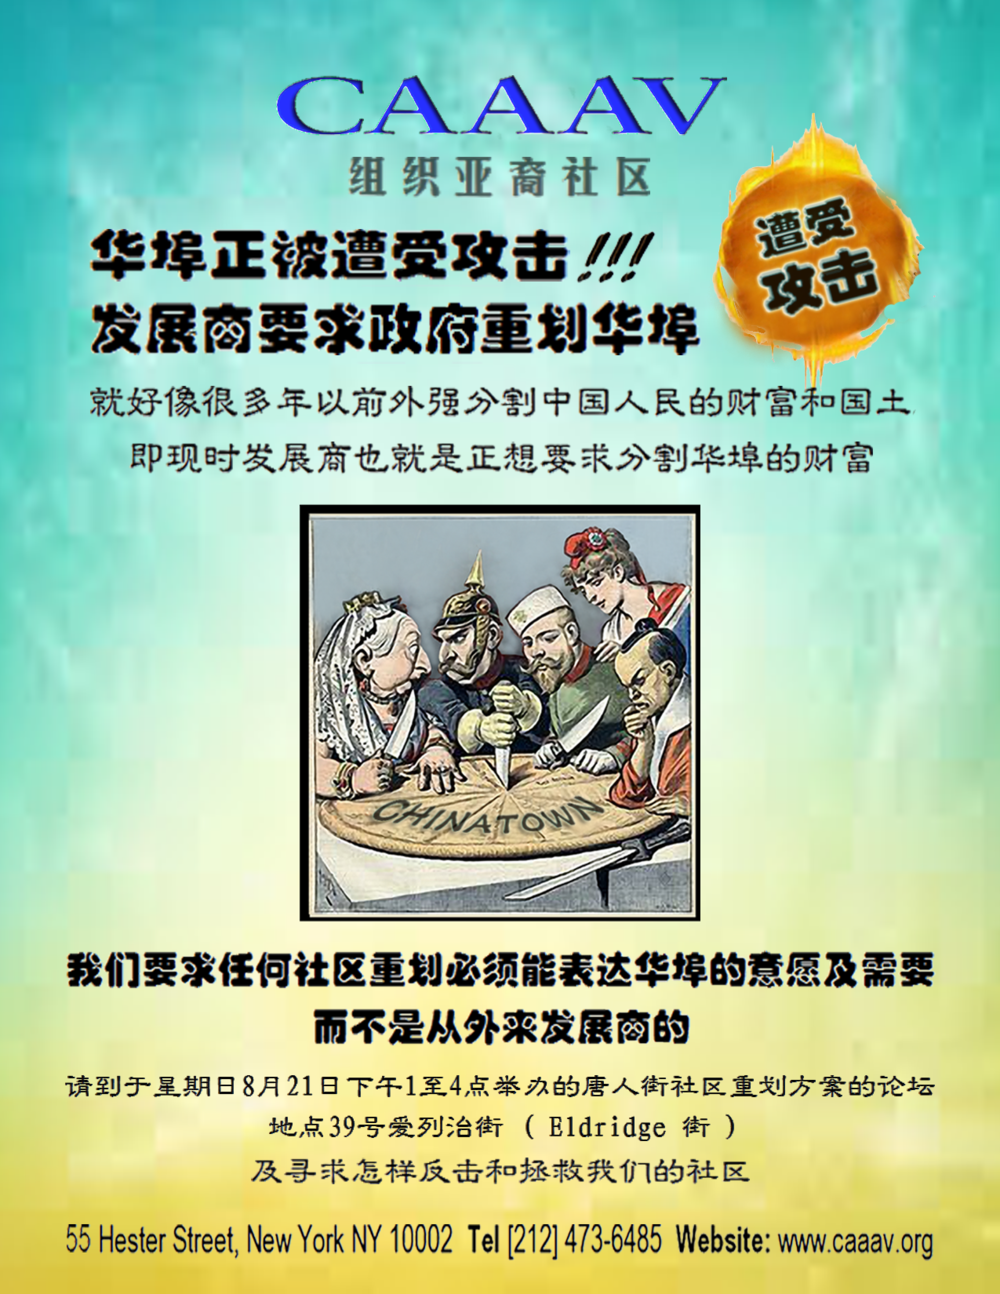 Poster designed by David Tang, CAAAV CTU member